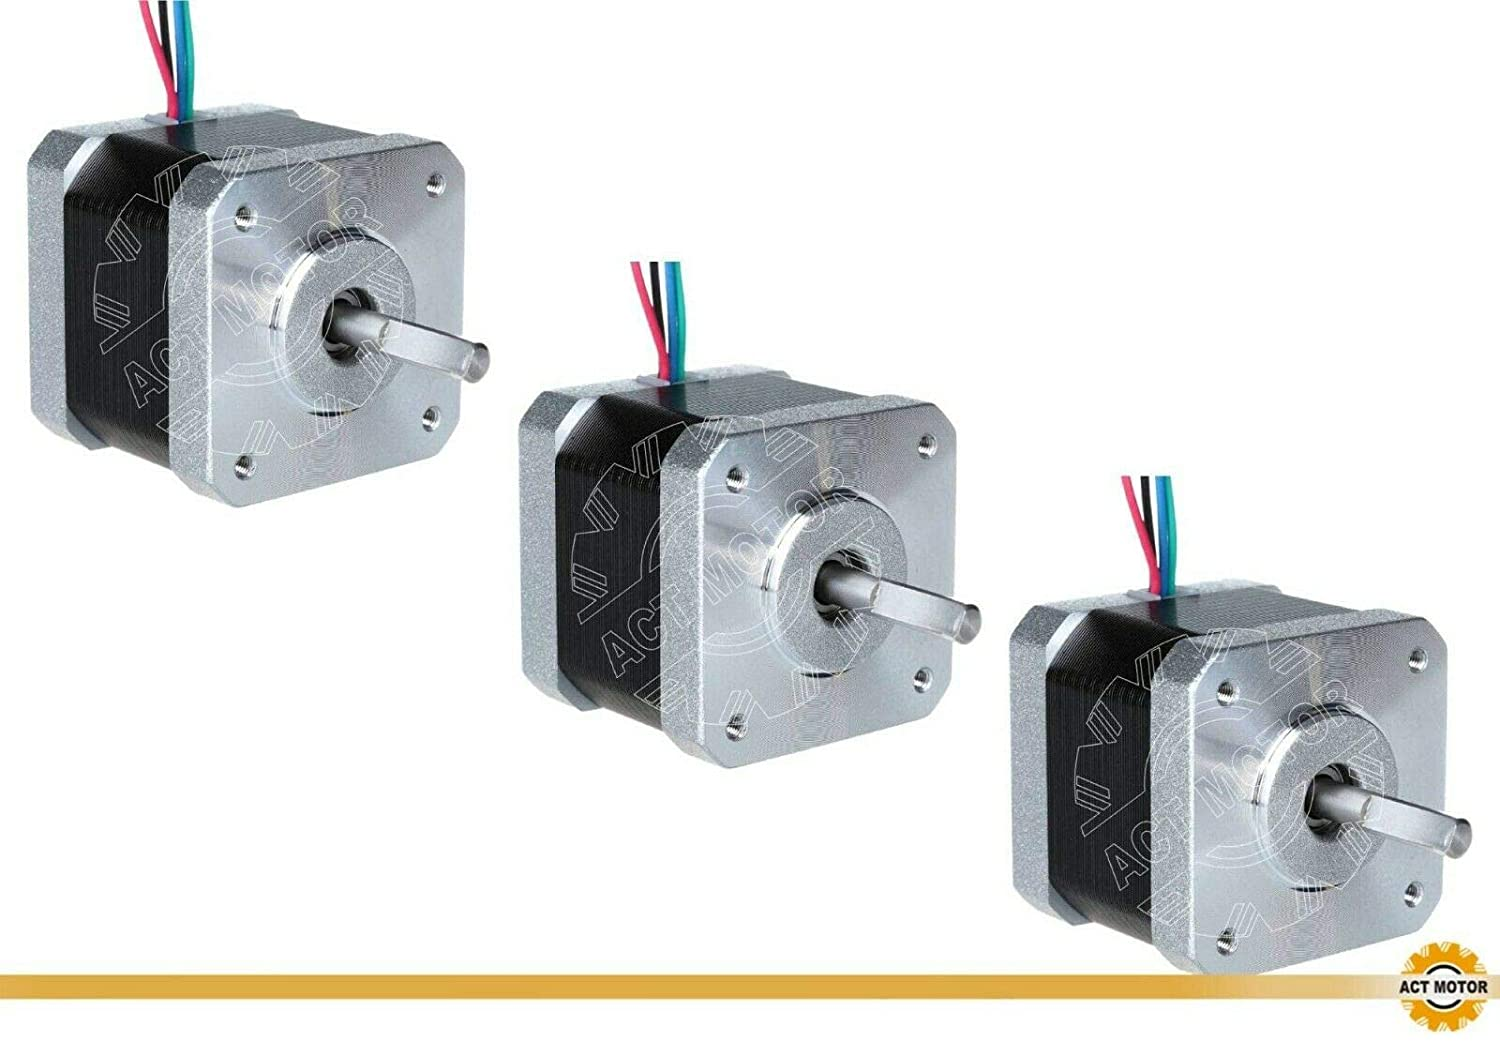 DE-SHIP Free 17HS4417P1 D-Shaft Nema17 Stepper Motor Bipolar 40 mm ...